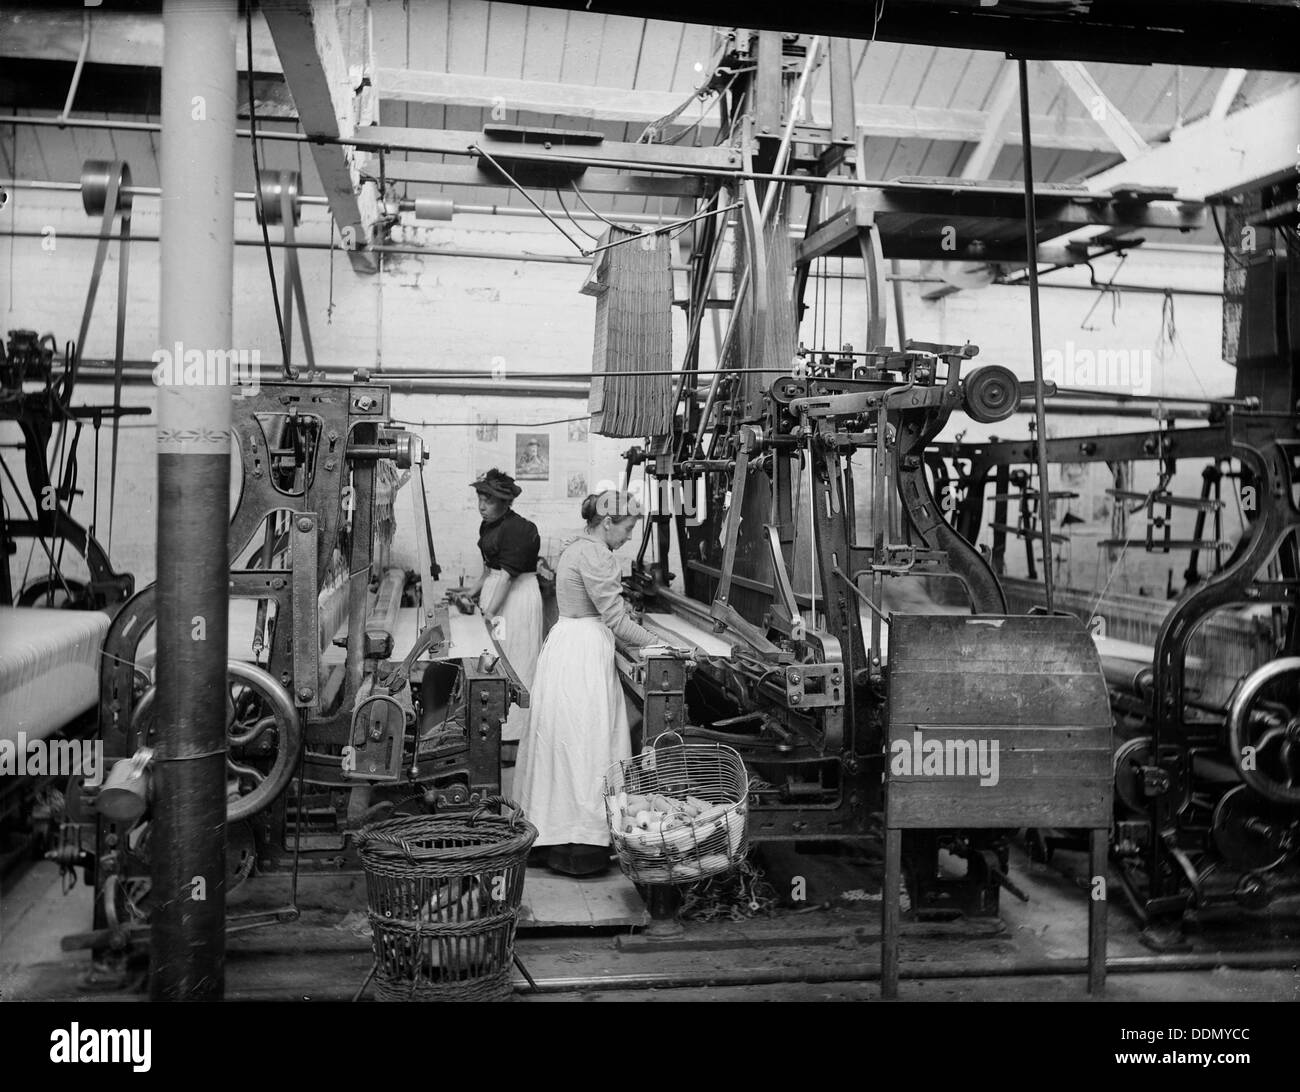 Early's Blanket Factory, Witney, Oxfordshire, 1897. Artist: Henry Taunt - Stock Image